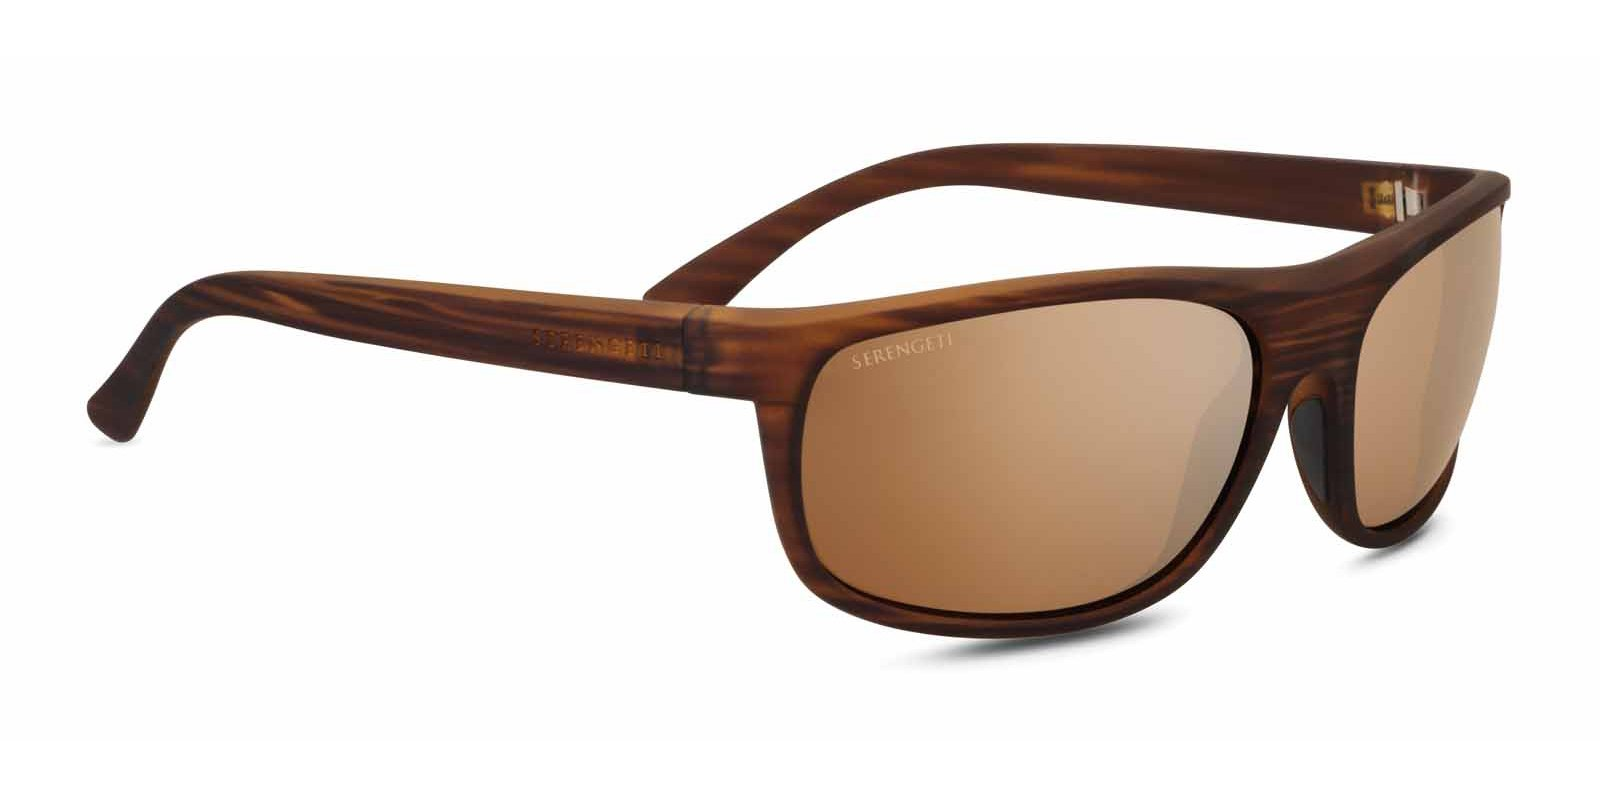 fff879fed4 Serengeti Alessio Sunglasses -Models 8672